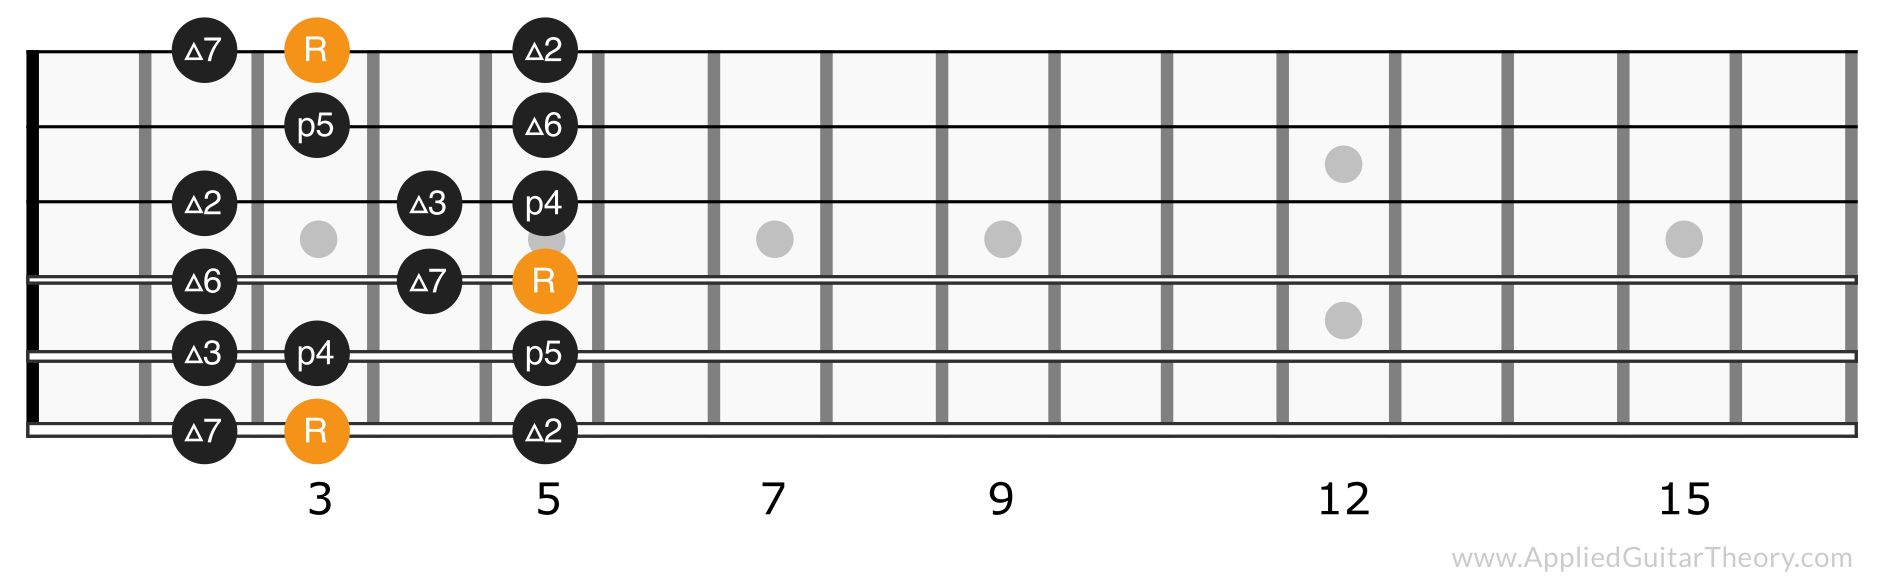 Major scale position 1